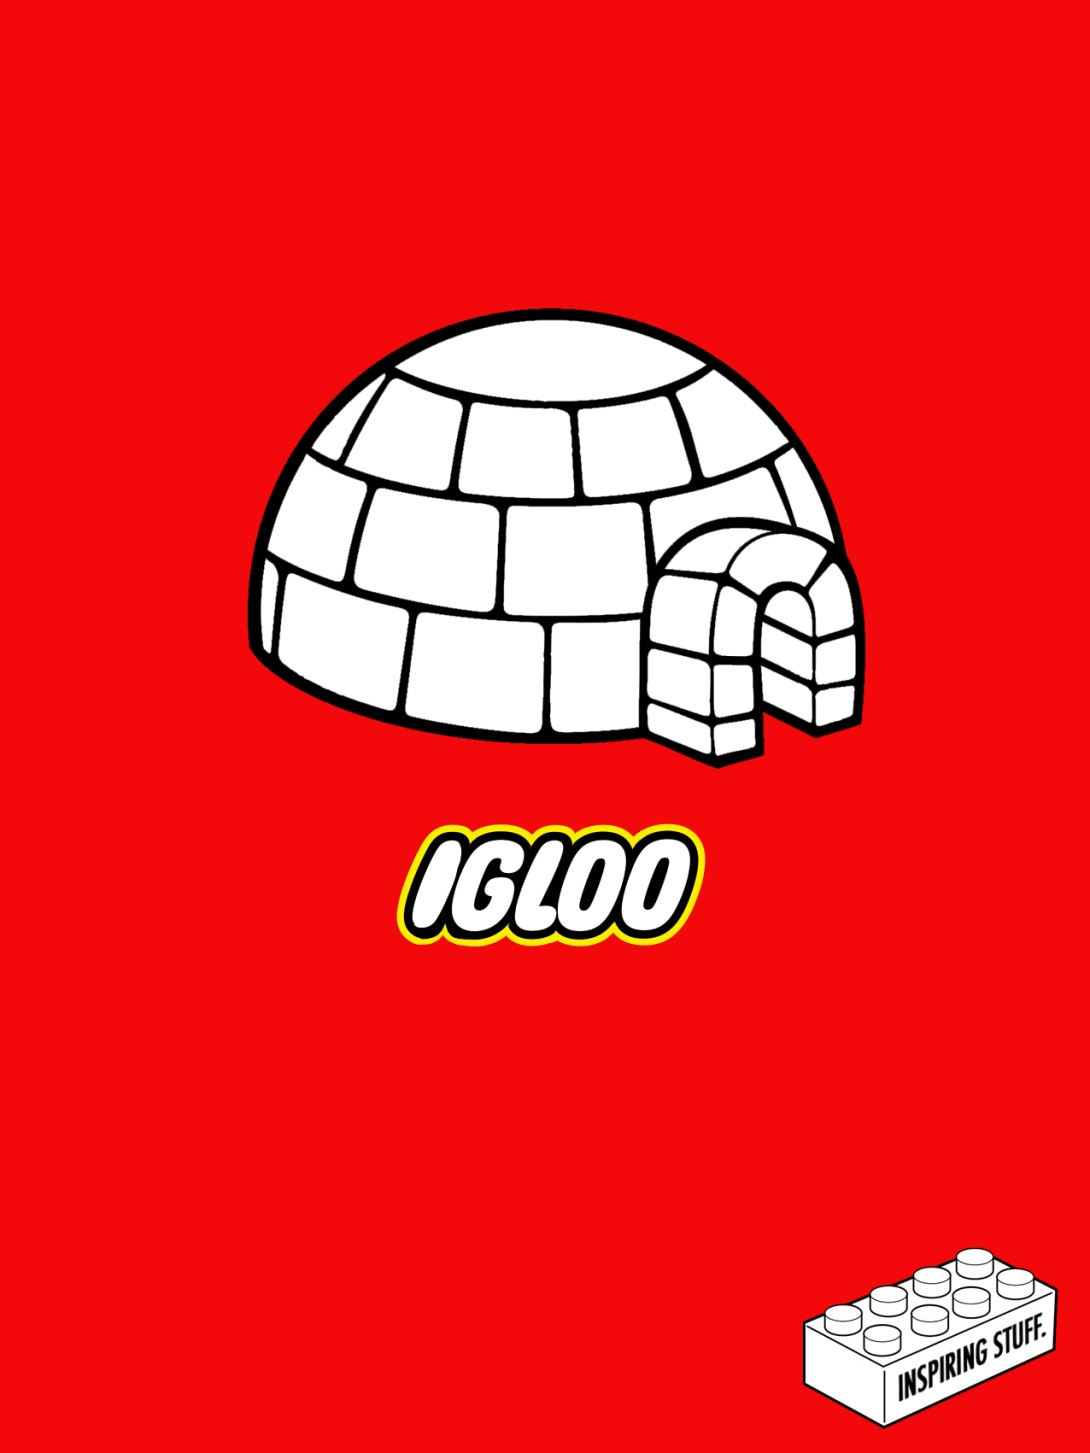 Ad idea for lego - igloo